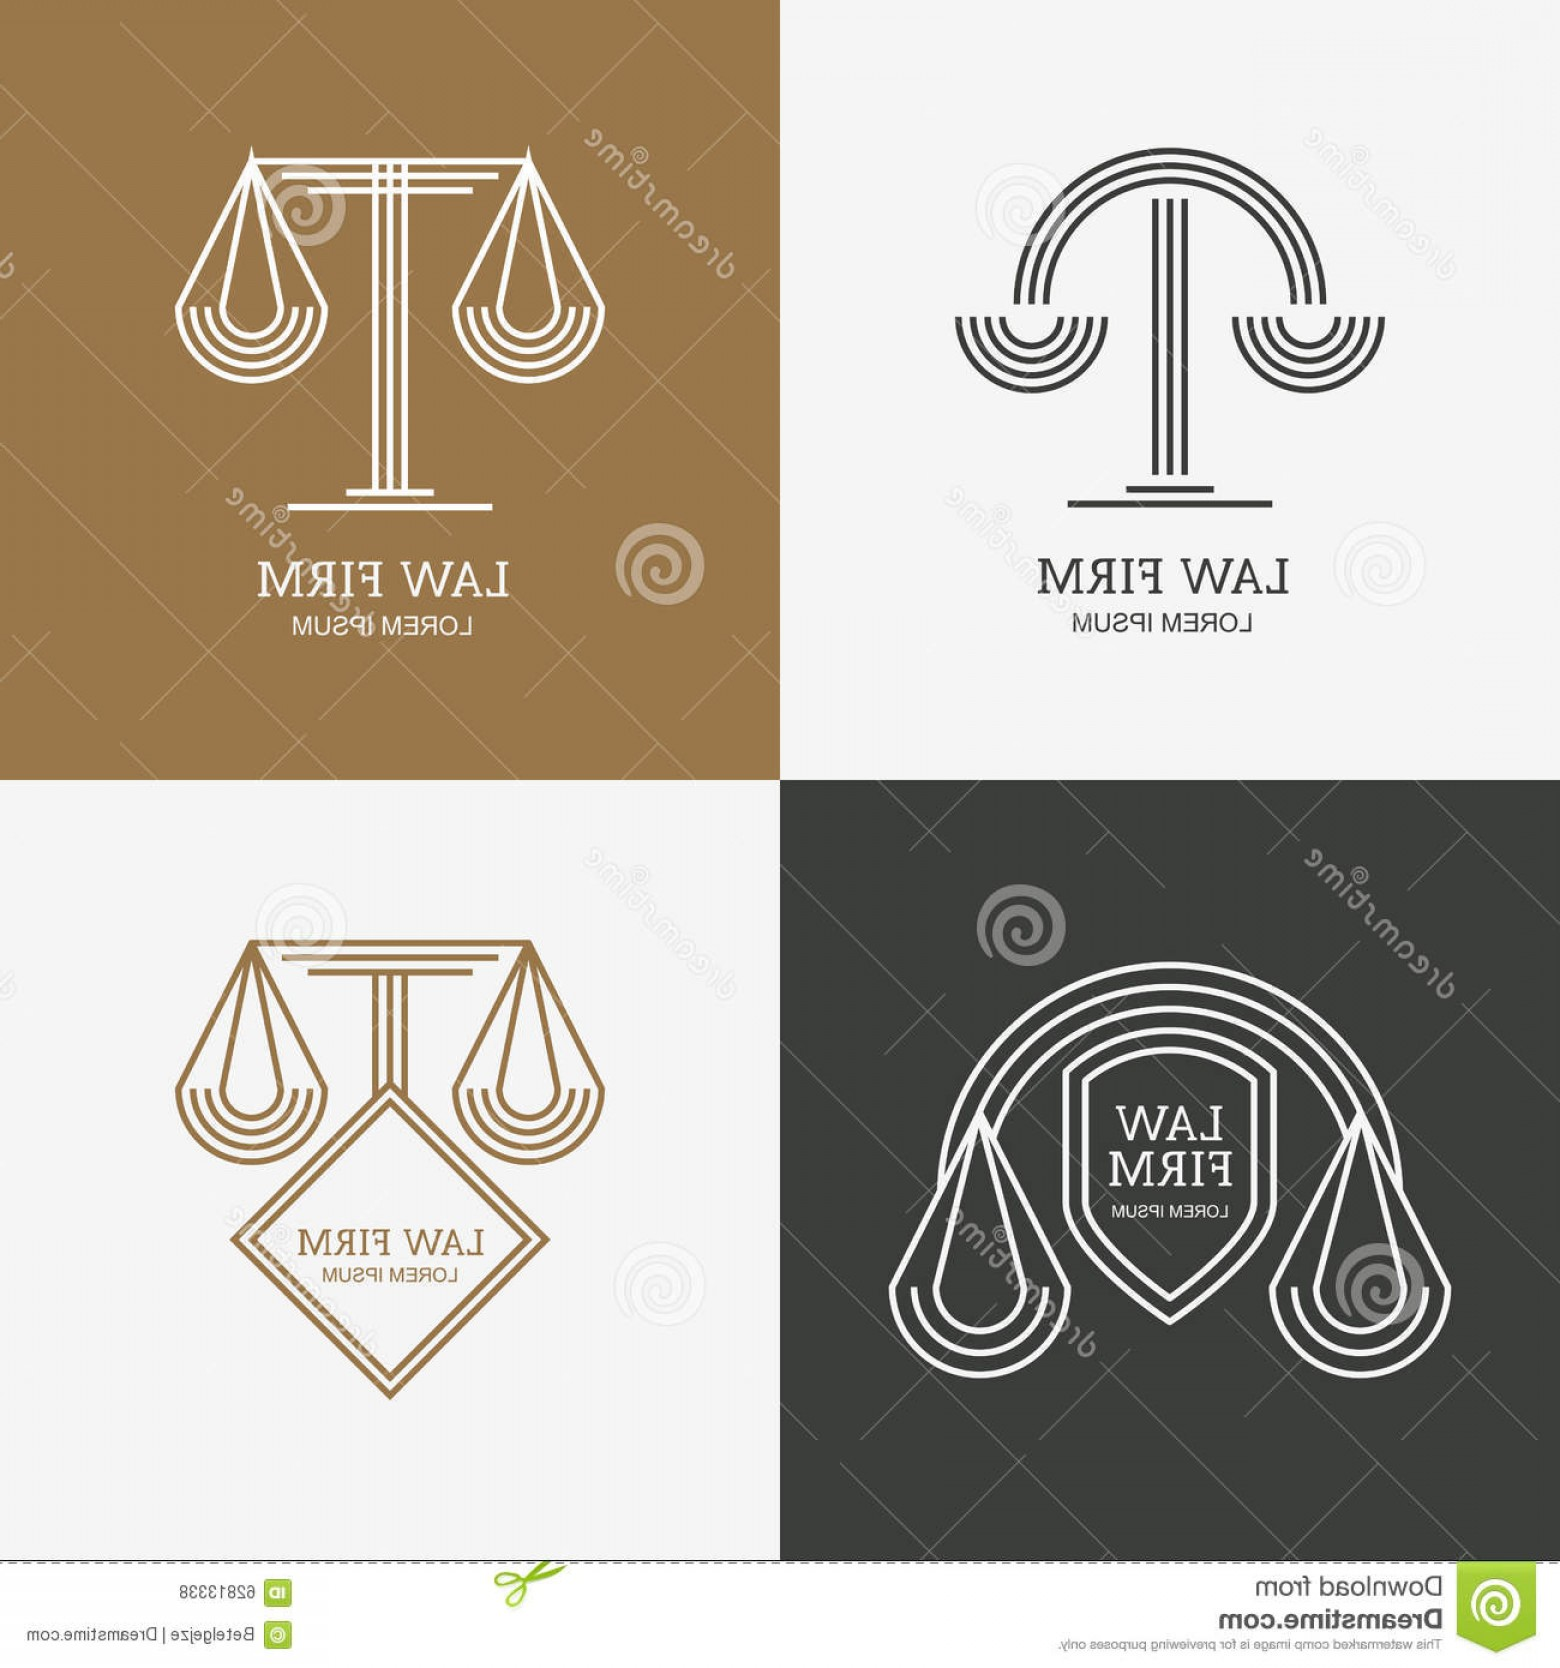 Vintage Sign Vector Attorney-Law: Stock Illustration Set Vector Line Style Vintage Law Firm Logo Design Template Trendy Abstract Illustration Scales Shield Concept Image